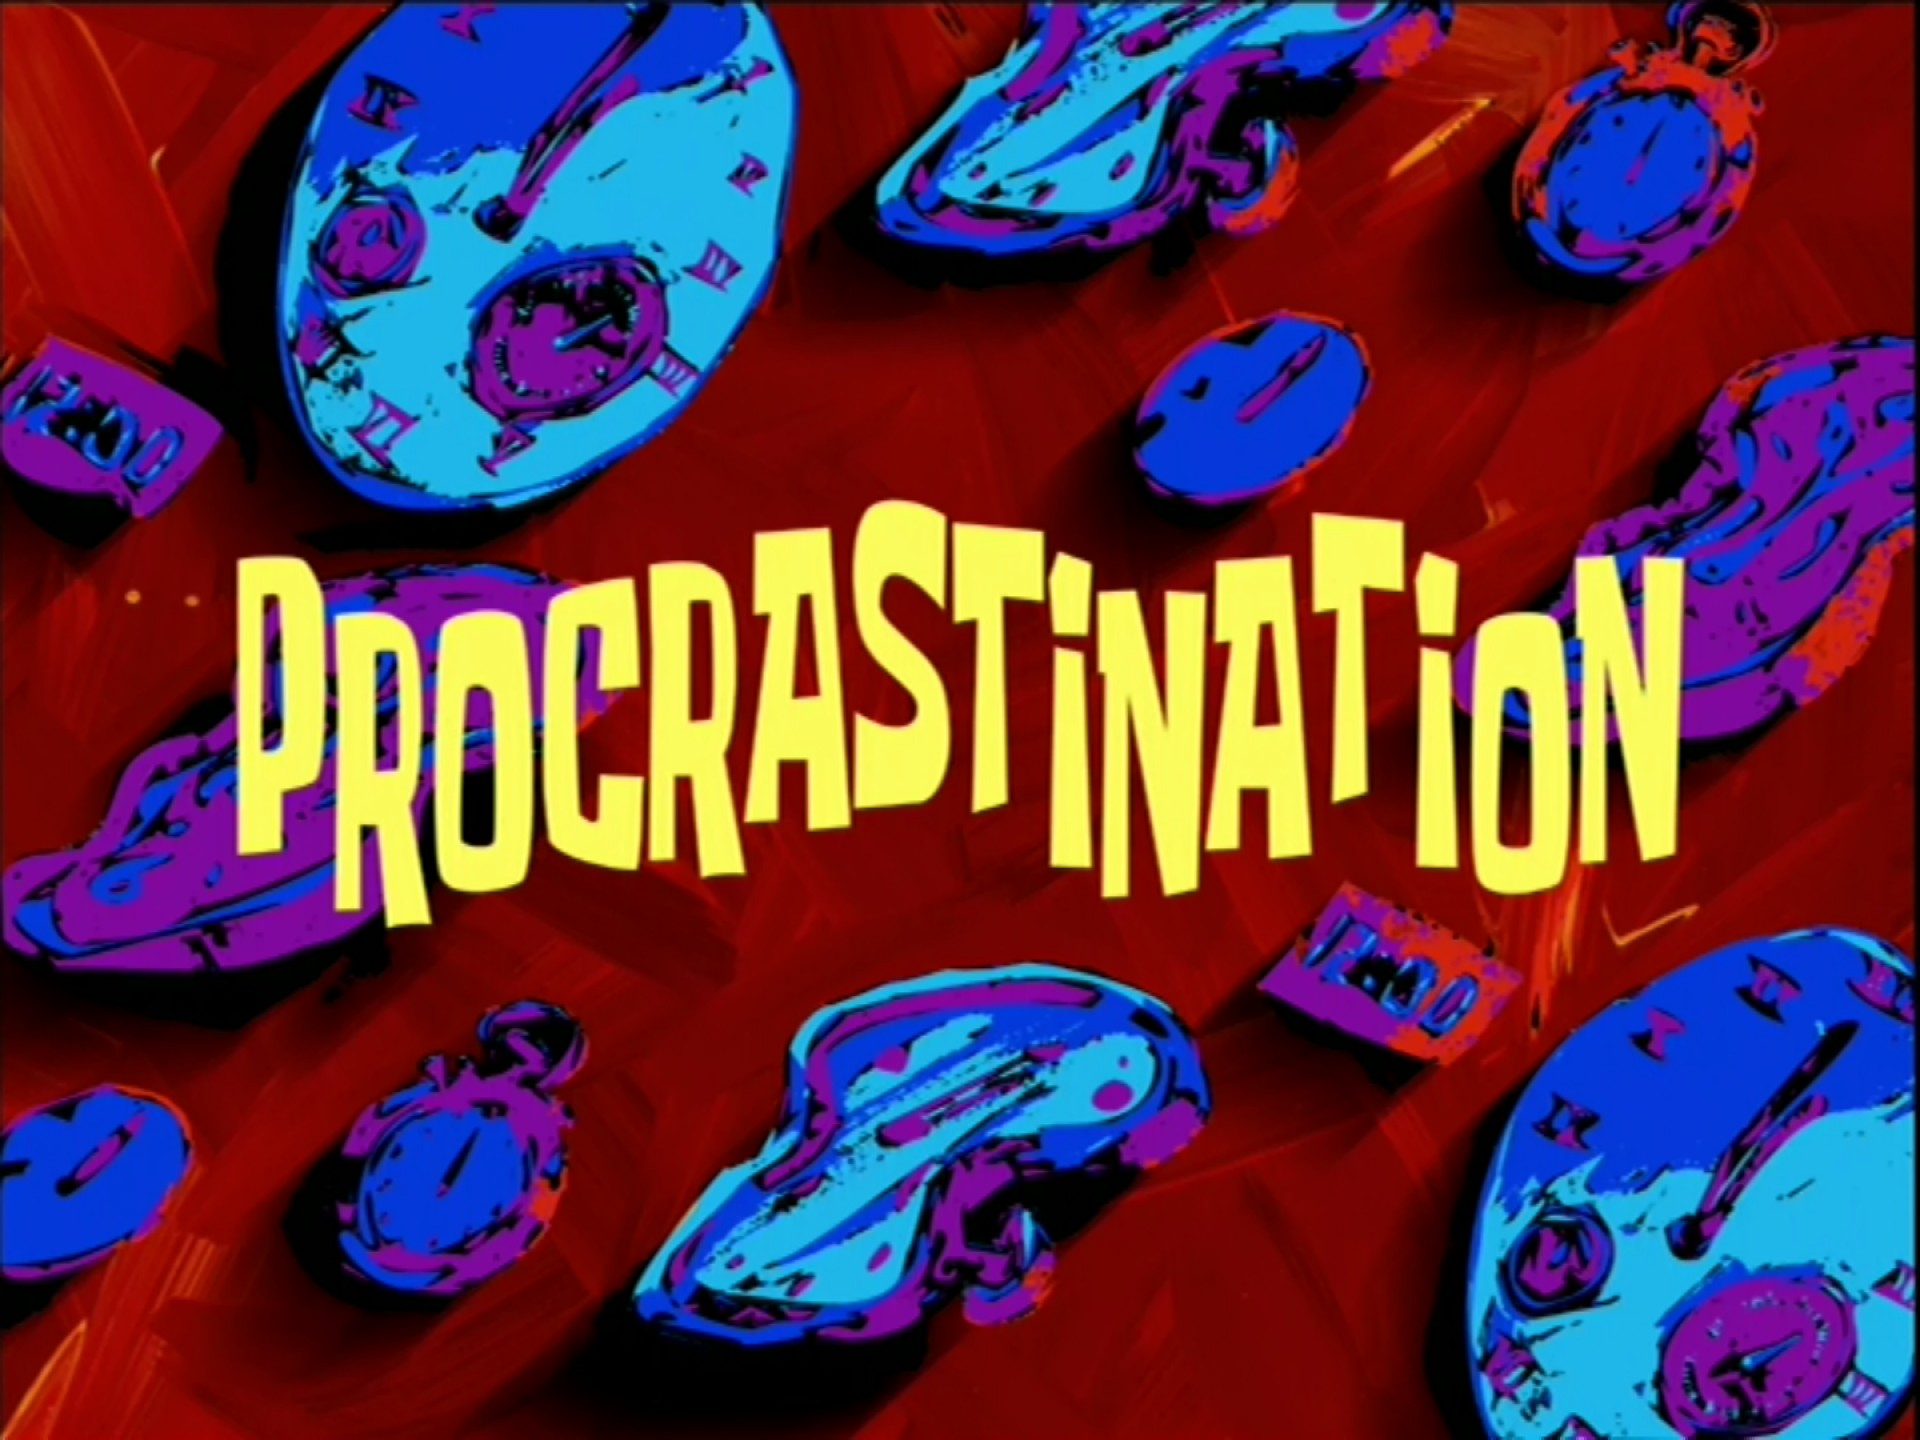 009 Procrastinationtranscript Encyclopedia Spongebobia Fandom Spongebob Writing Essay The Latestcb201806220 Gif Font For Hours Meme Rap Surprising Writes An Full Episode Generator Deleted Scene 1920